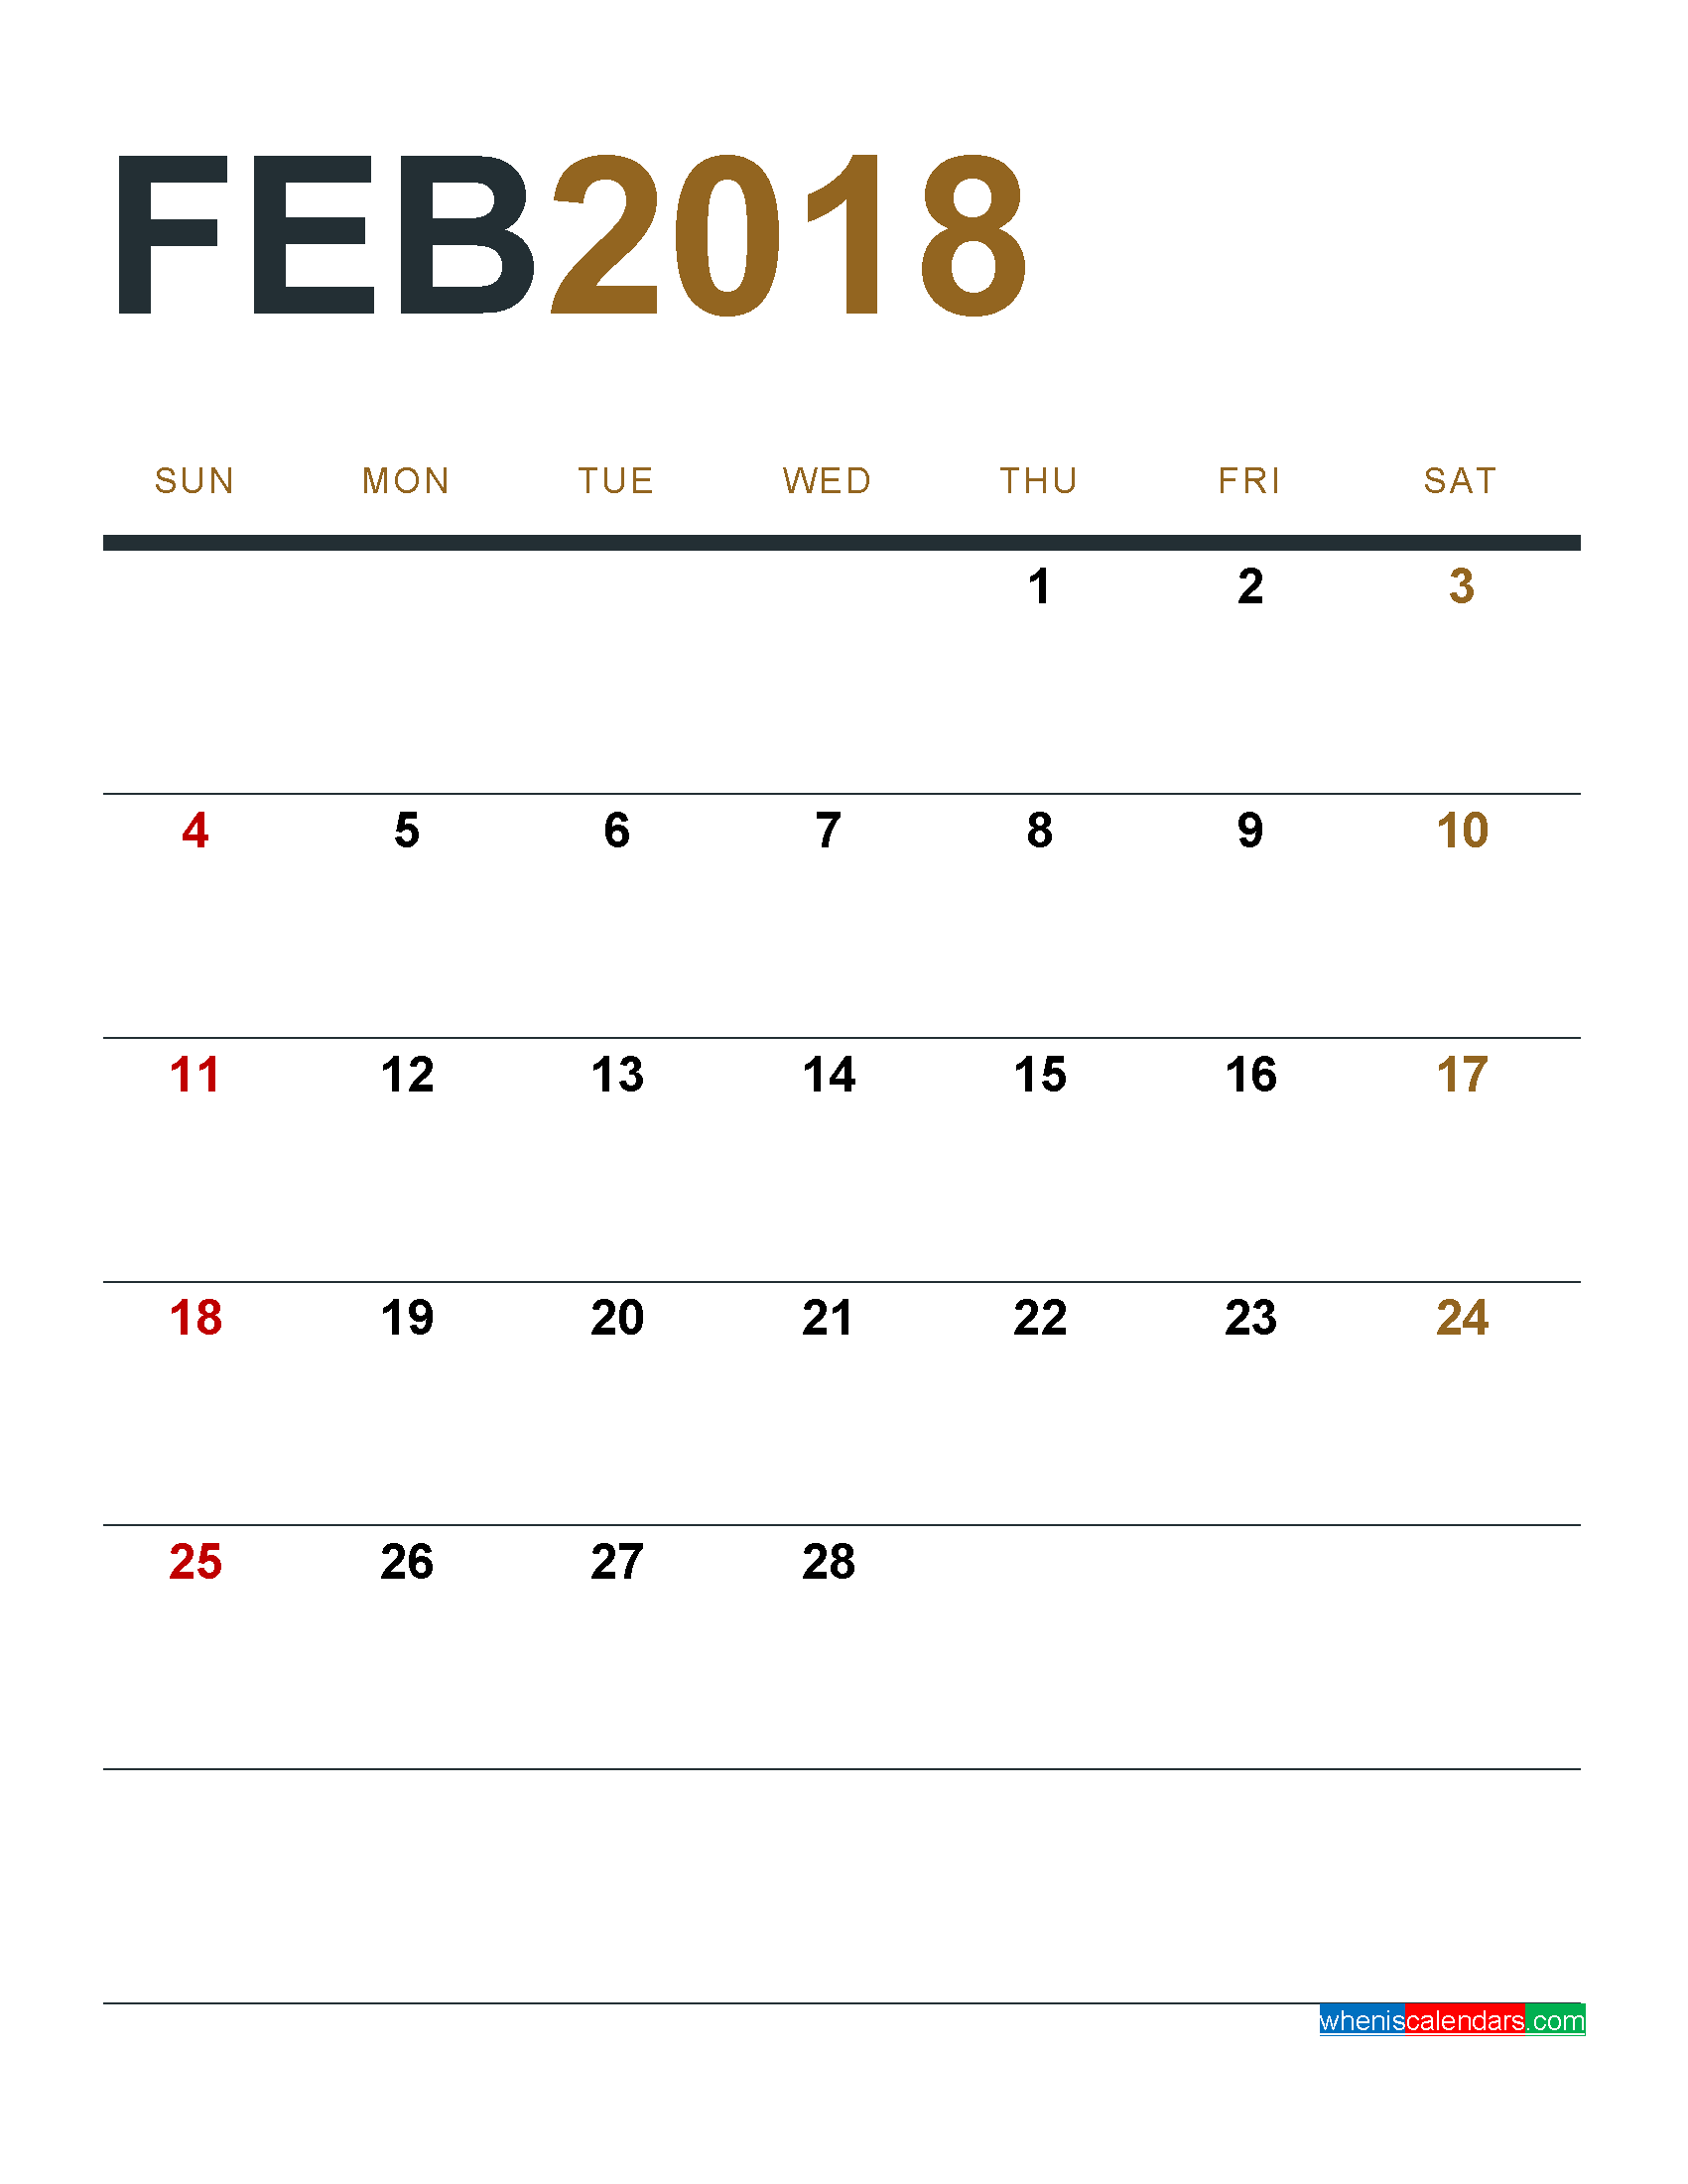 February 2018 Calendar Printable as PDF and Image 1 Month 1 Page